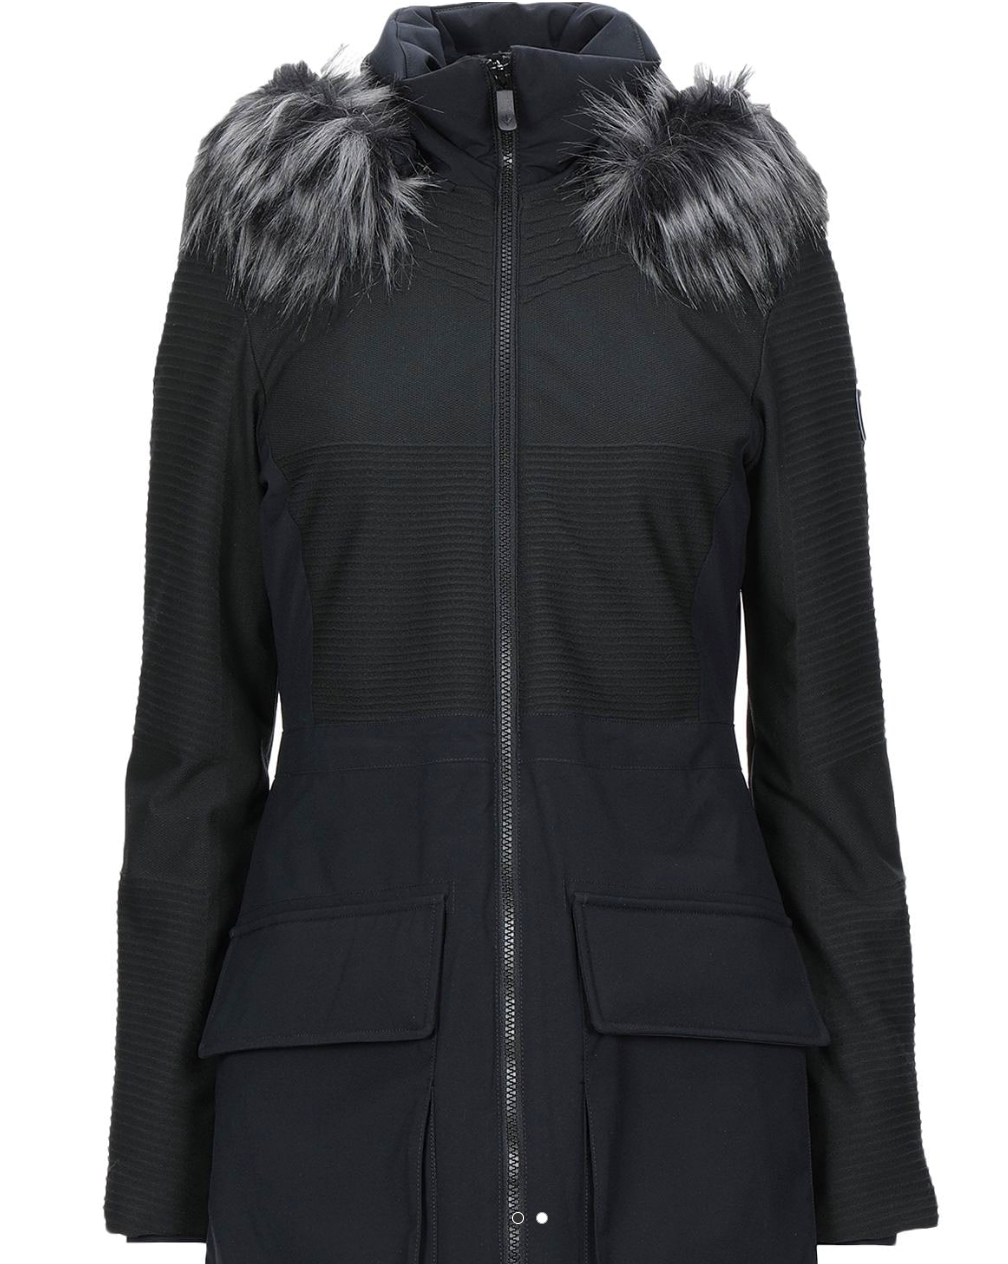 ,155! NWT Rossignol Women's Alexane Parka Coat Jacket Black Made in Italy - M